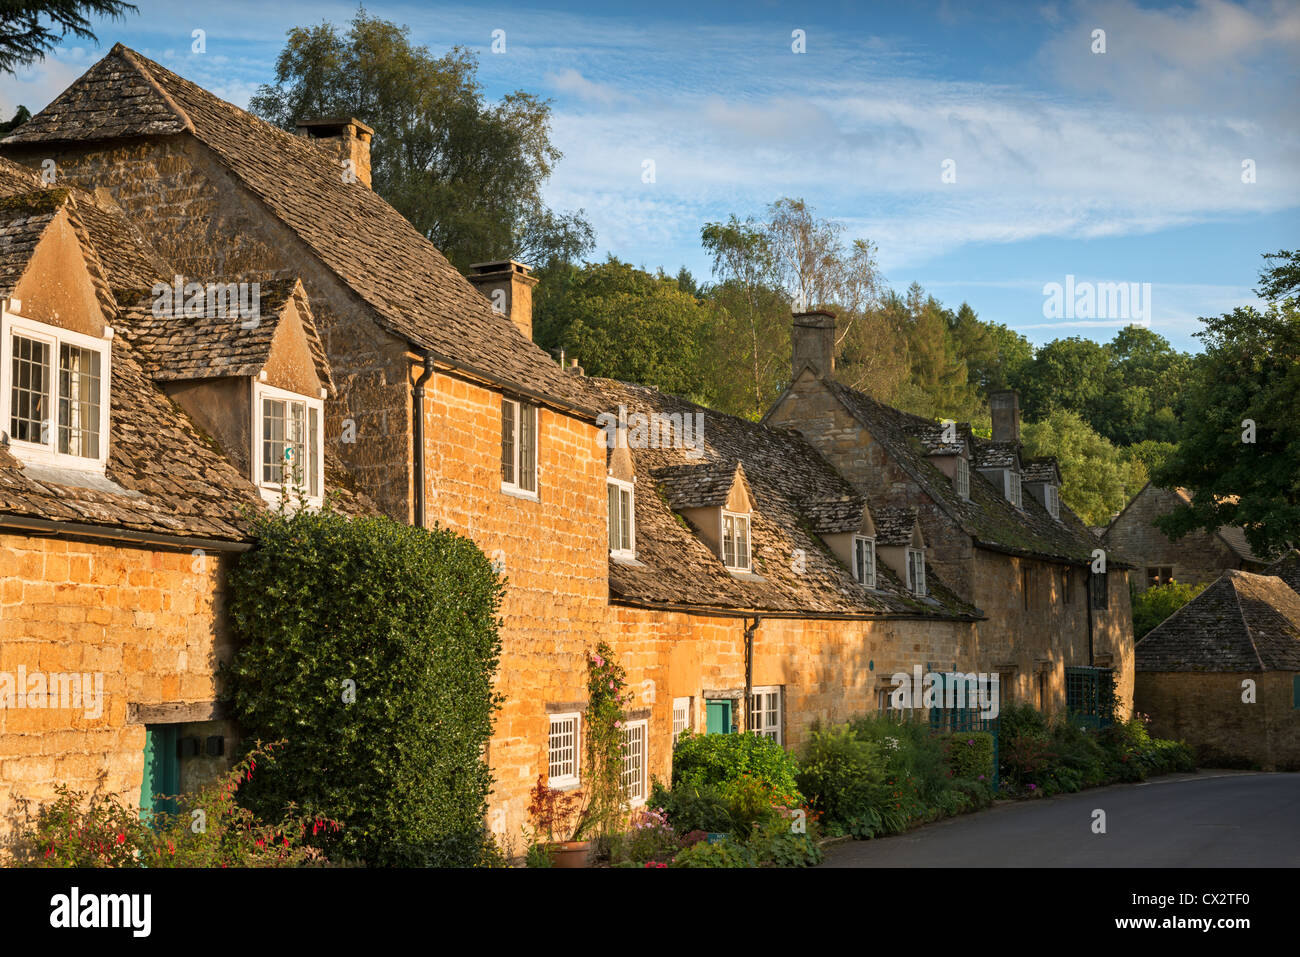 Cottages in the Cotswolds village of Snowshill, Gloucestershire, England. September 2012. - Stock Image